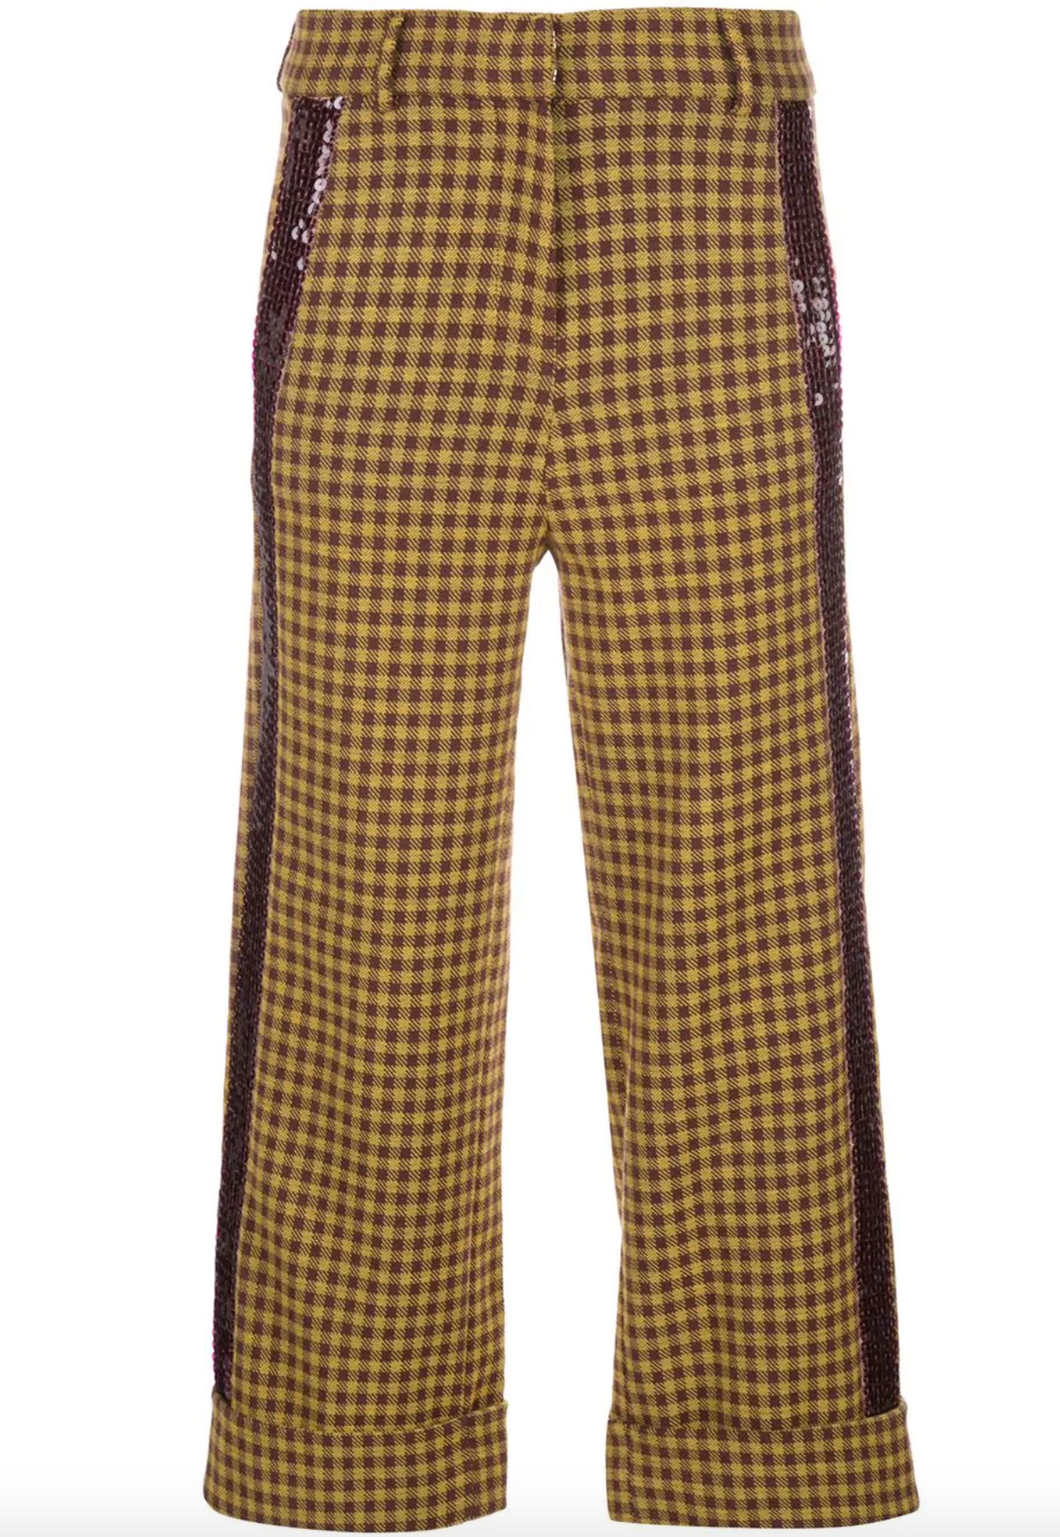 Dacil Pant - Burgundy/Yellow